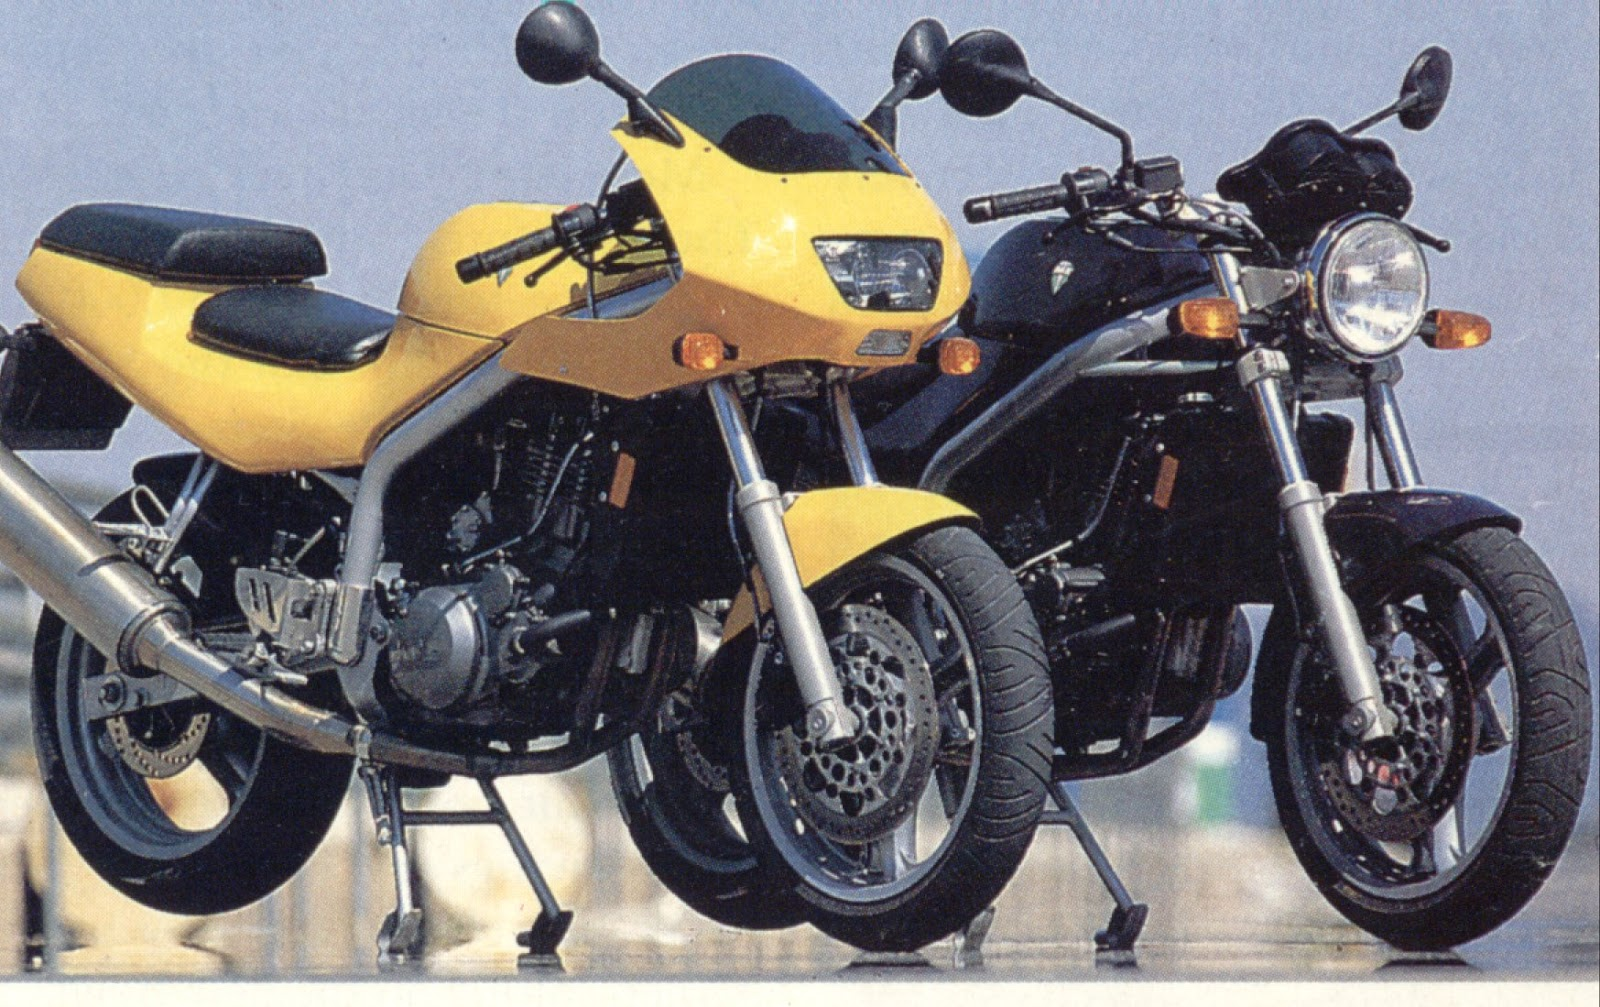 MZ Skorpion 660 Sport 1995 images #116469